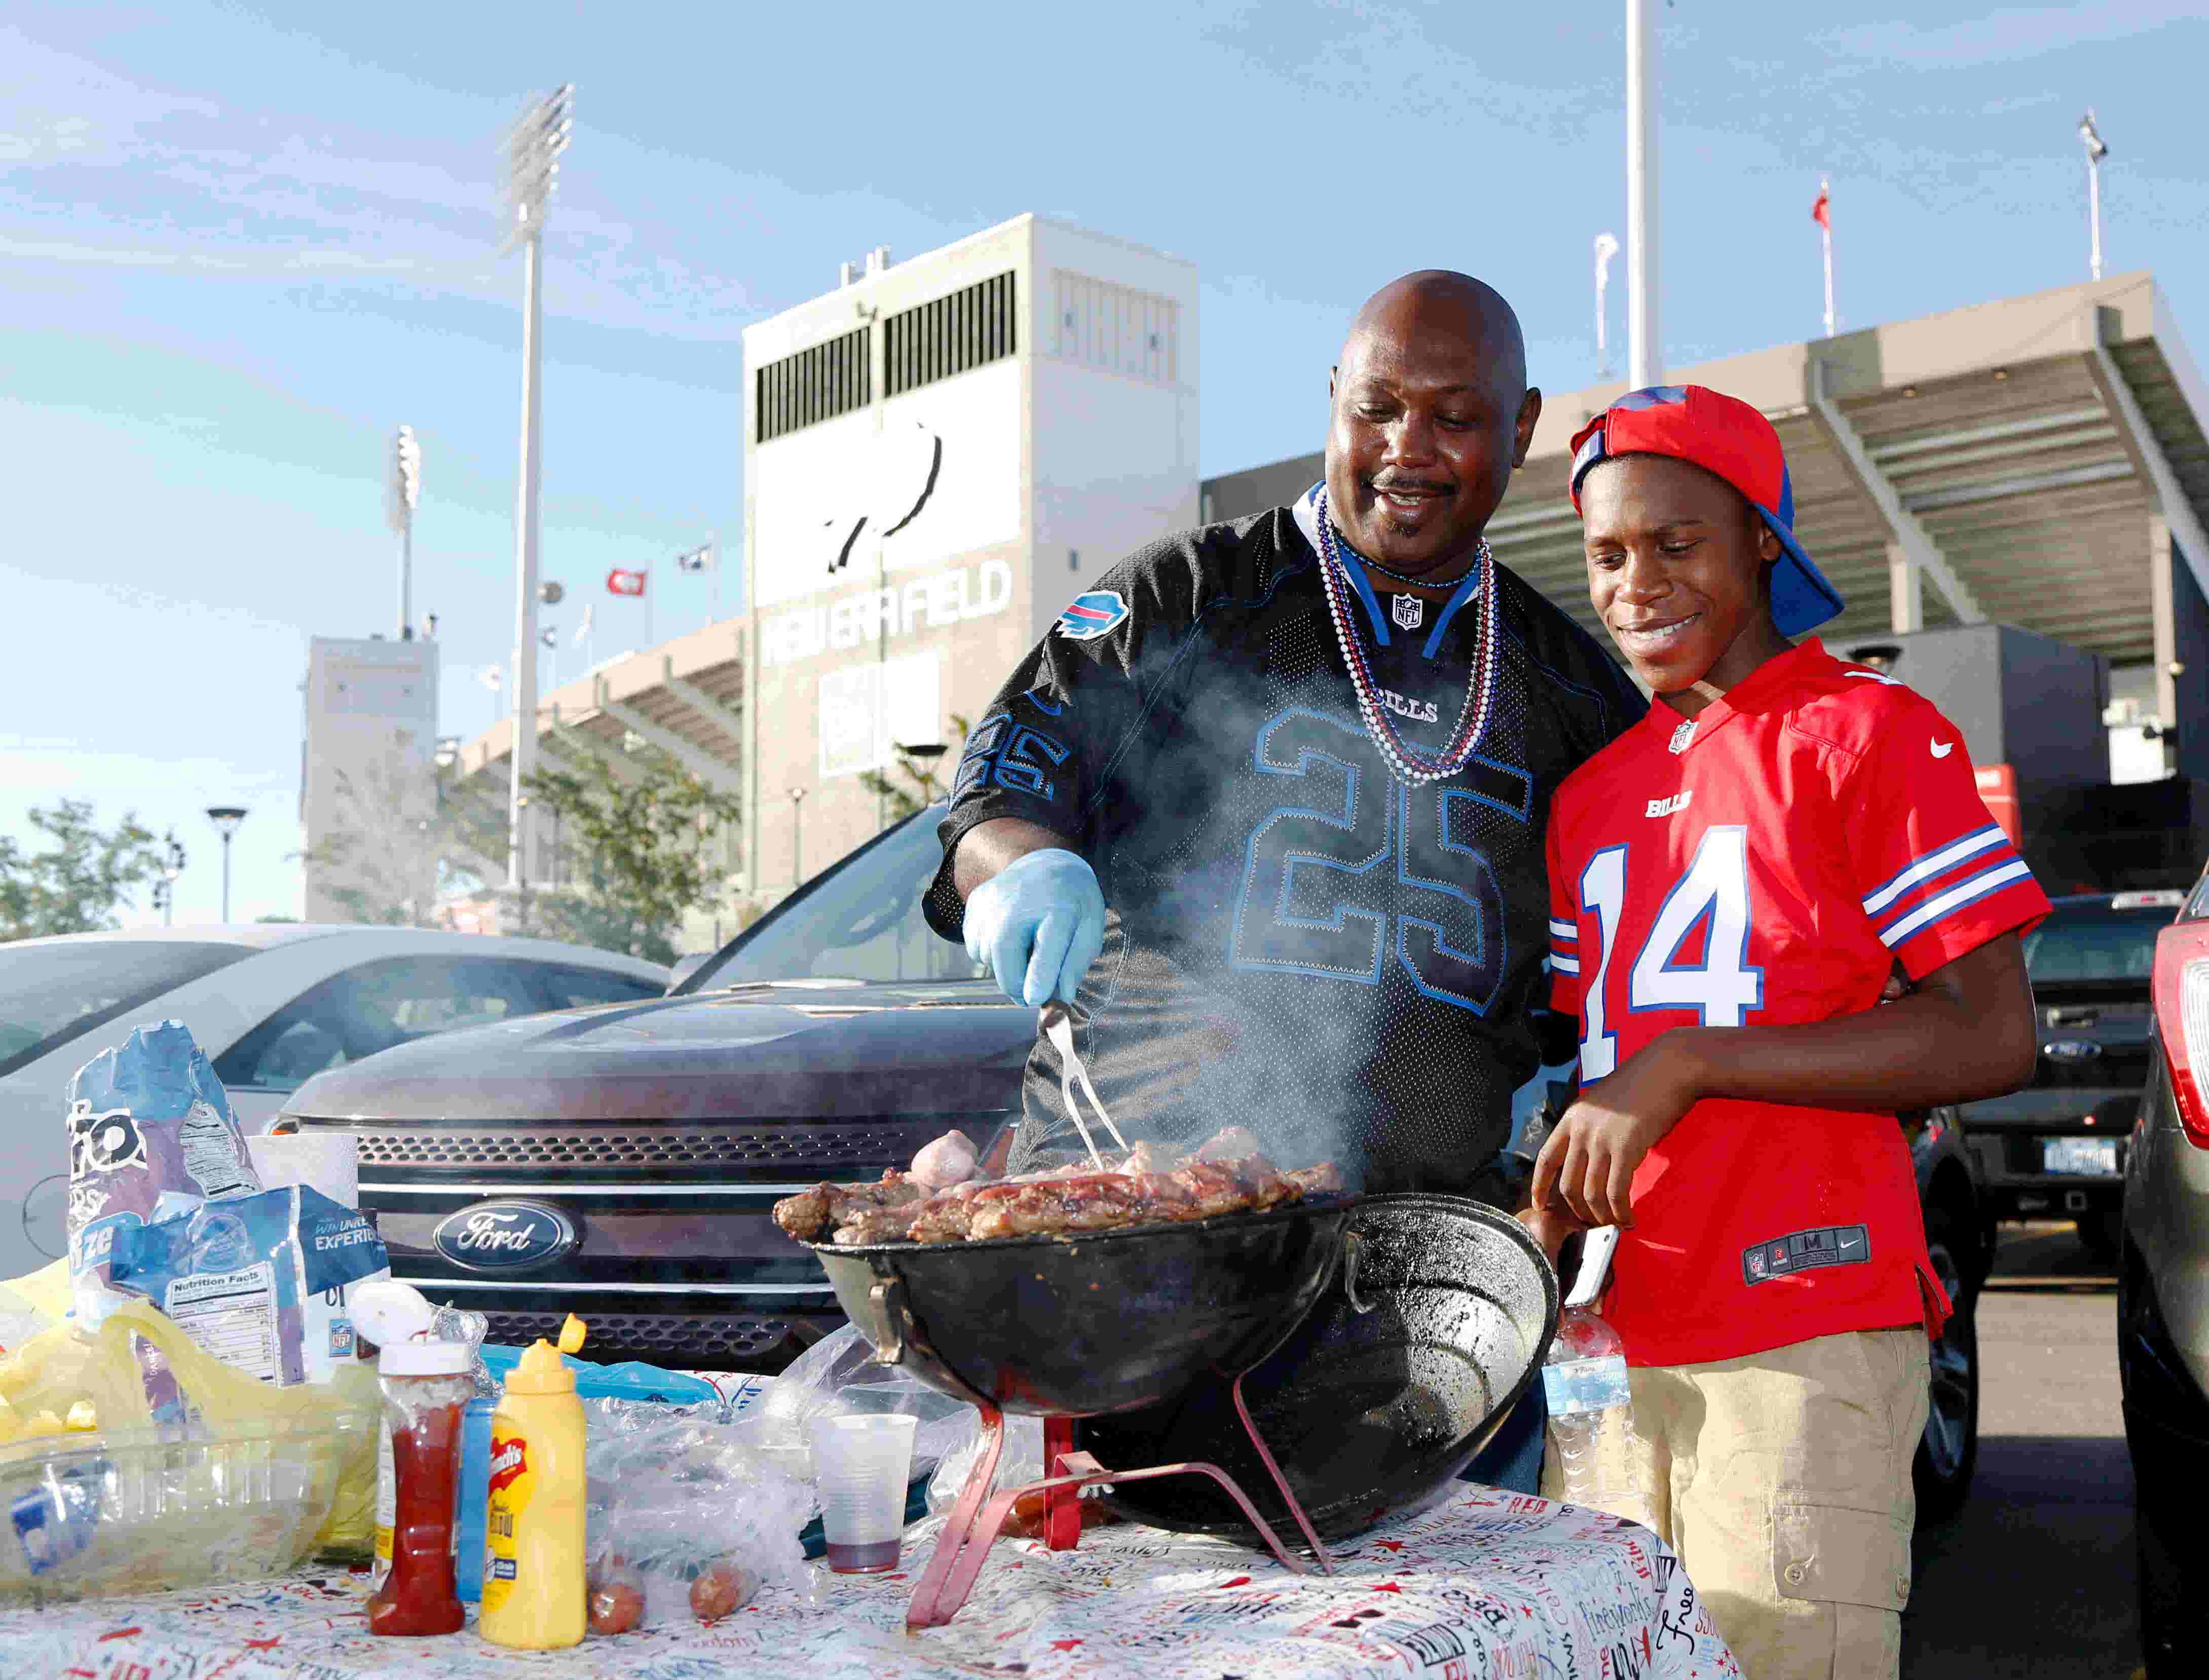 Pro football fan index: Who has the best tailgating?